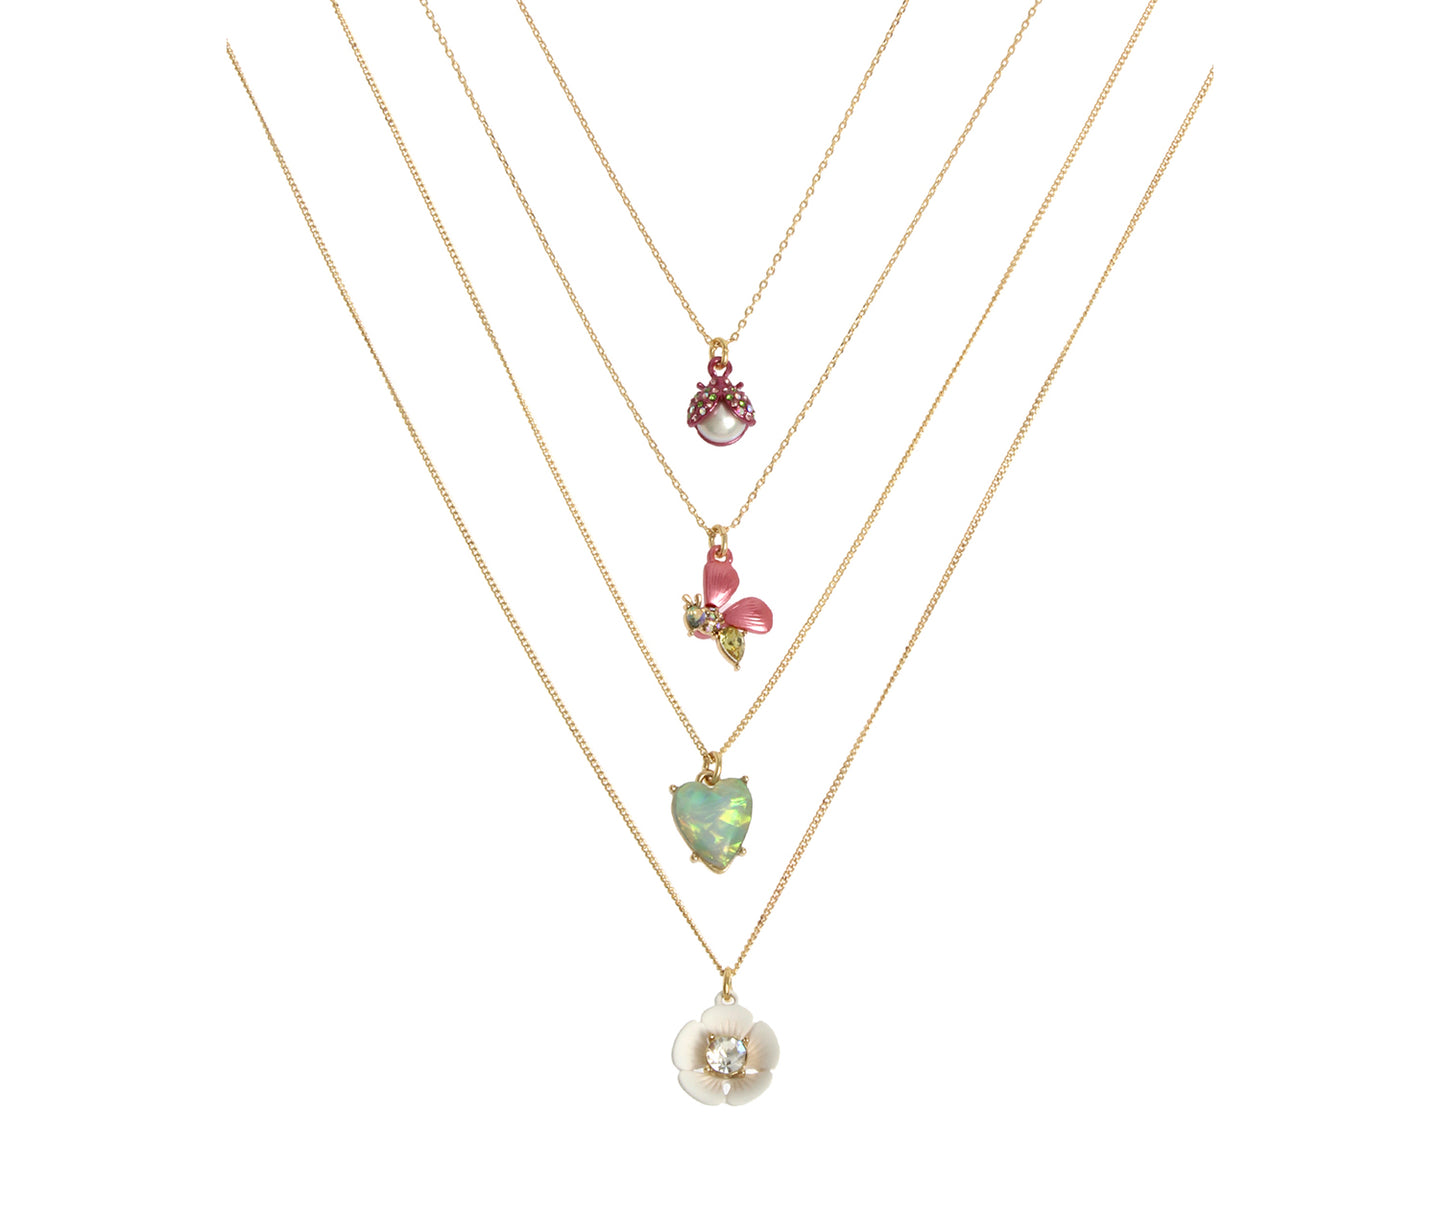 OPULENT FLORAL FOUR NECKLACE SET MULTI - JEWELRY - Betsey Johnson